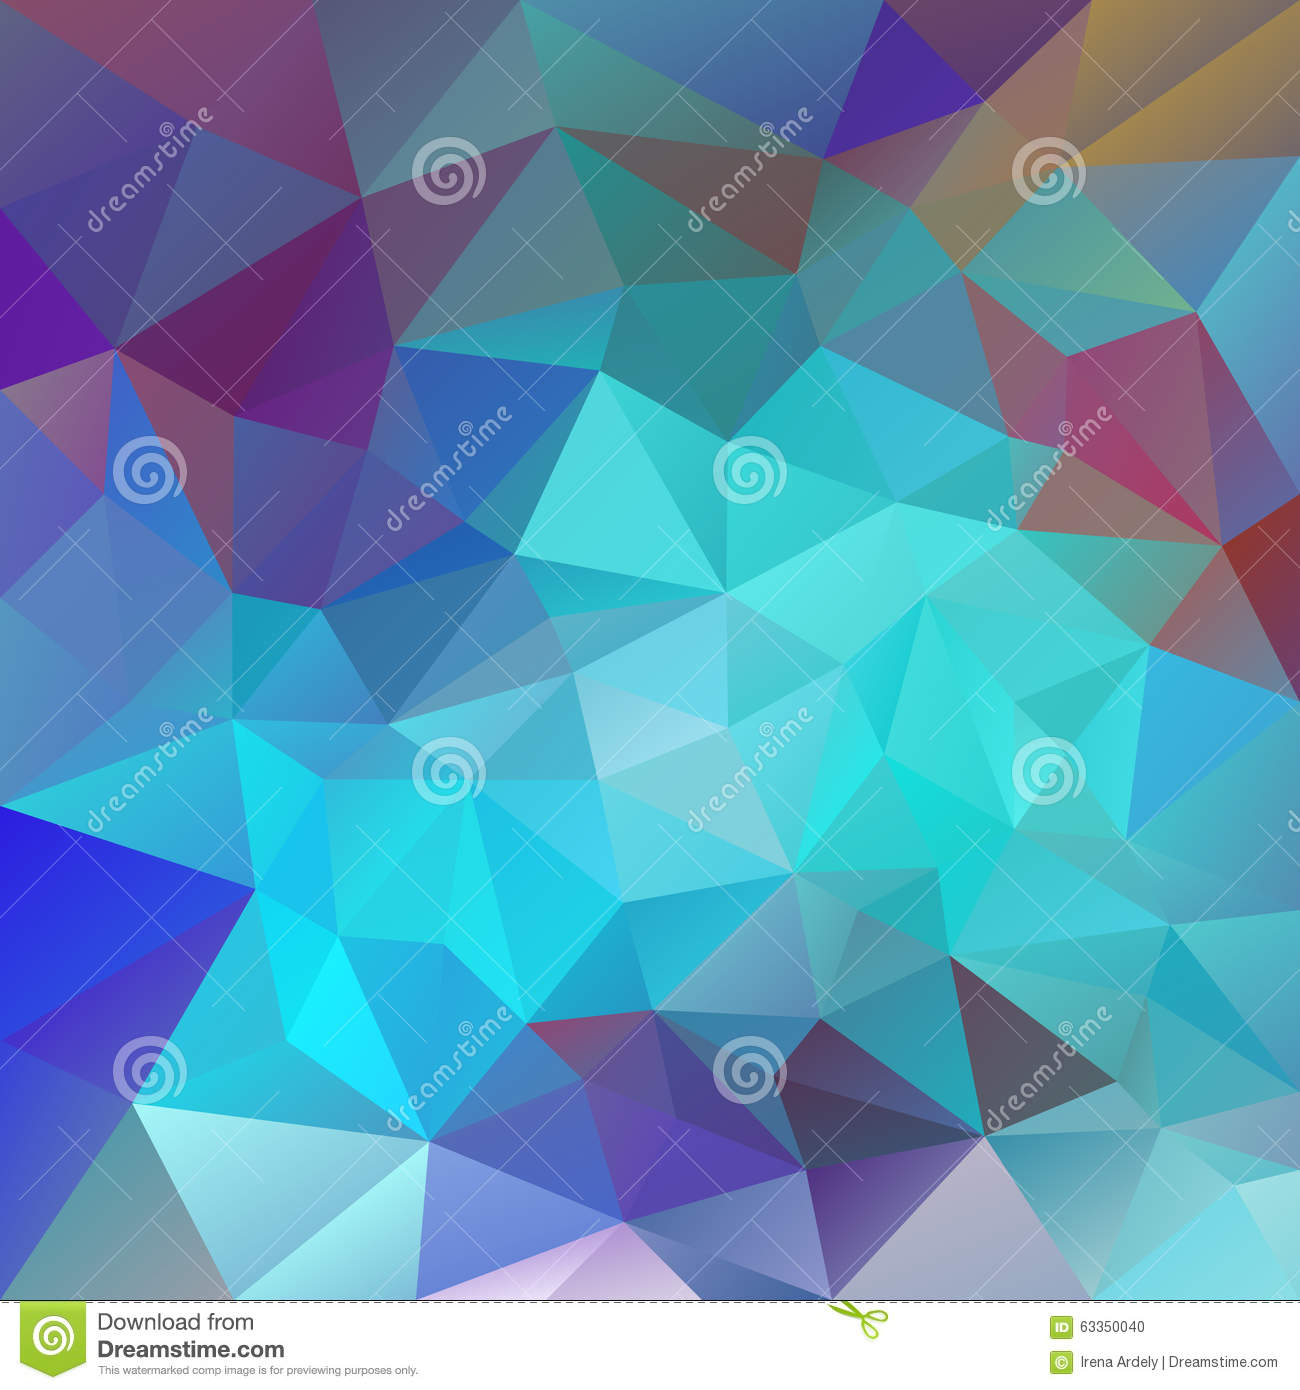 vector polygon background with irregular tessellations